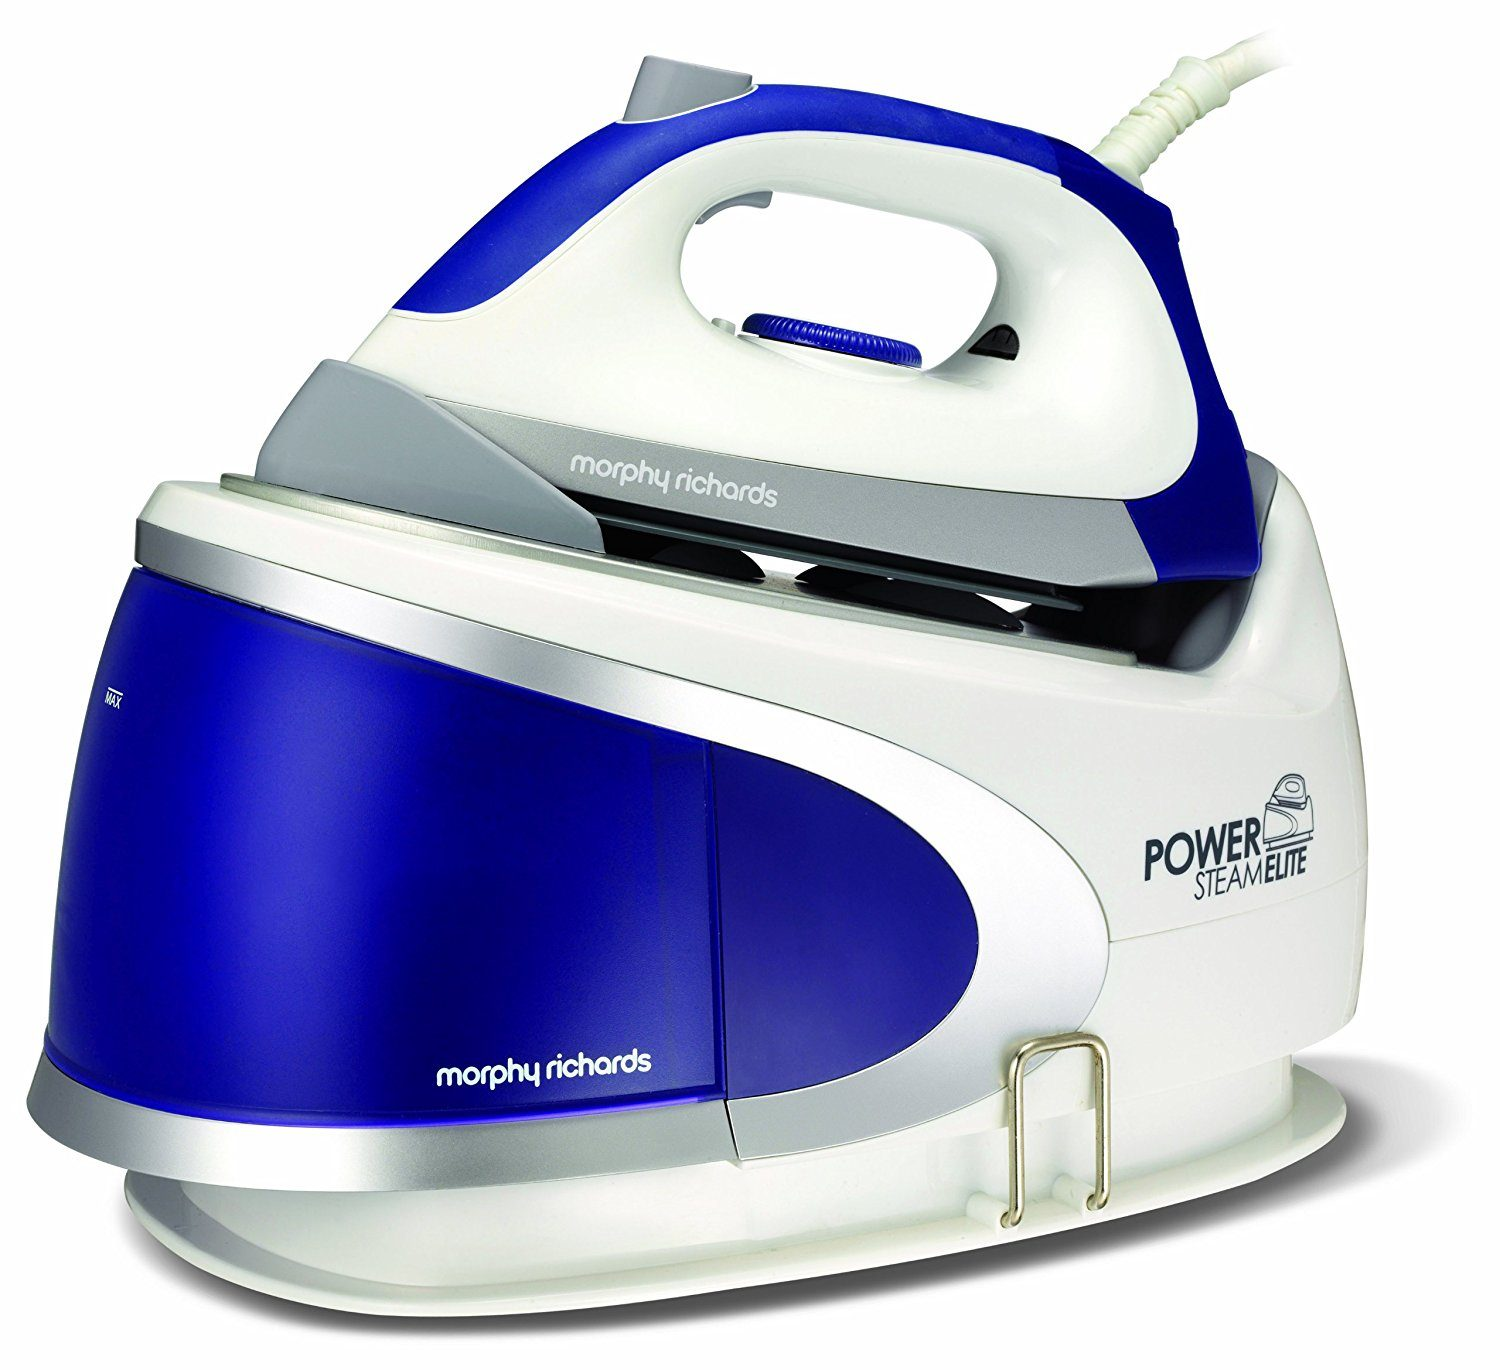 Morphy Richards 330007 Power Steam Elite Steam Generator Iron